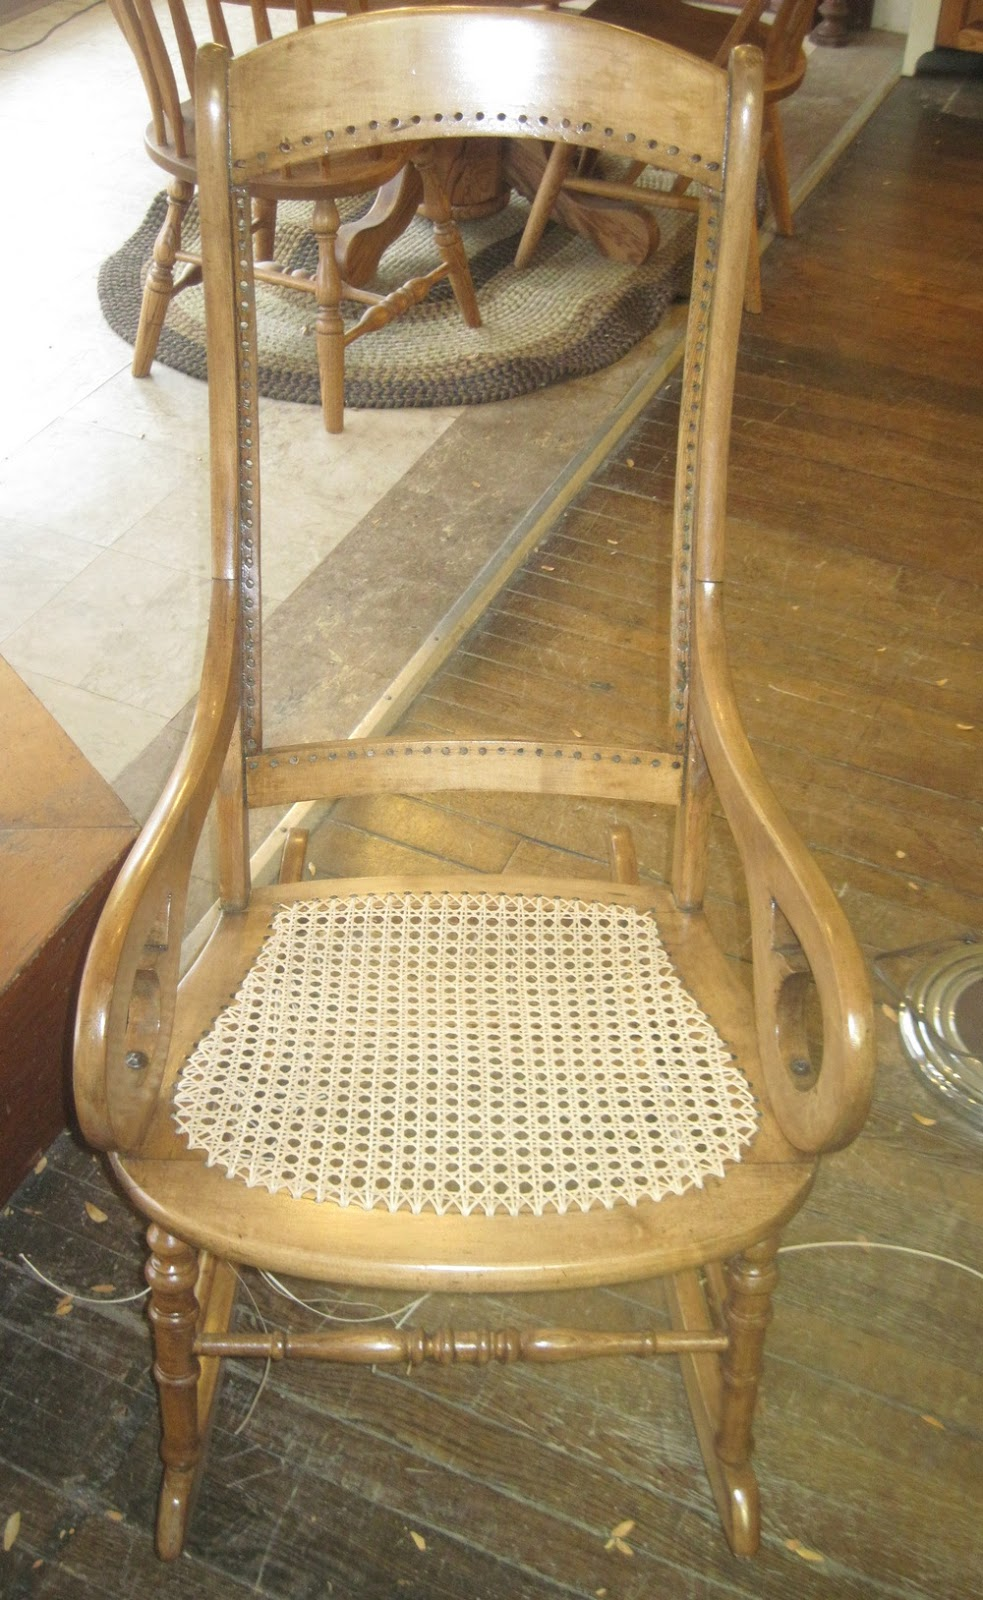 how to recane a chair table and 10 chairs b & c emporium antiques original hardware